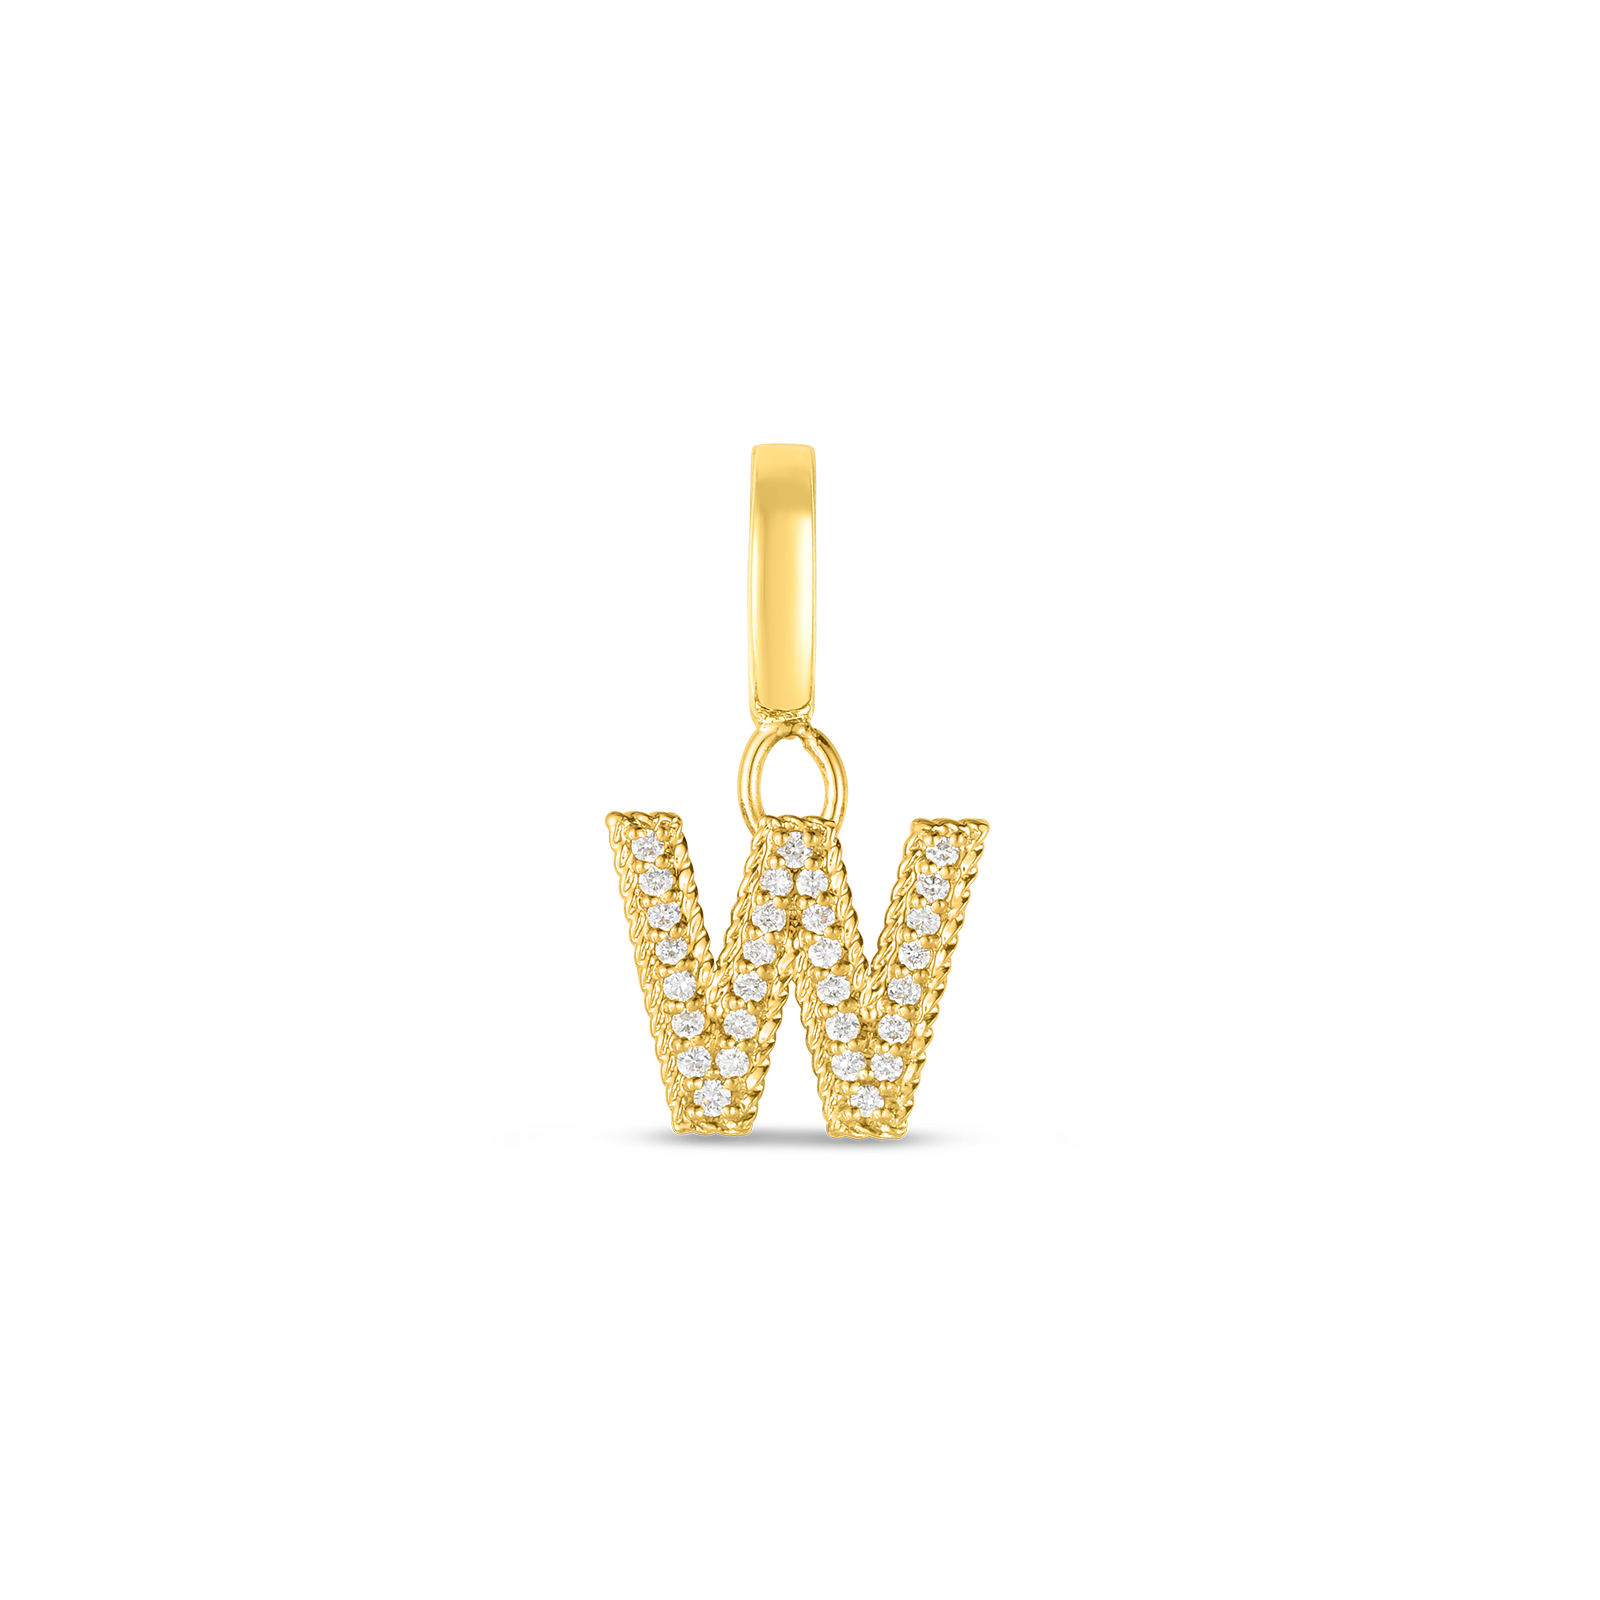 18k Gold & Diamond Princess Letter 'W' Charm